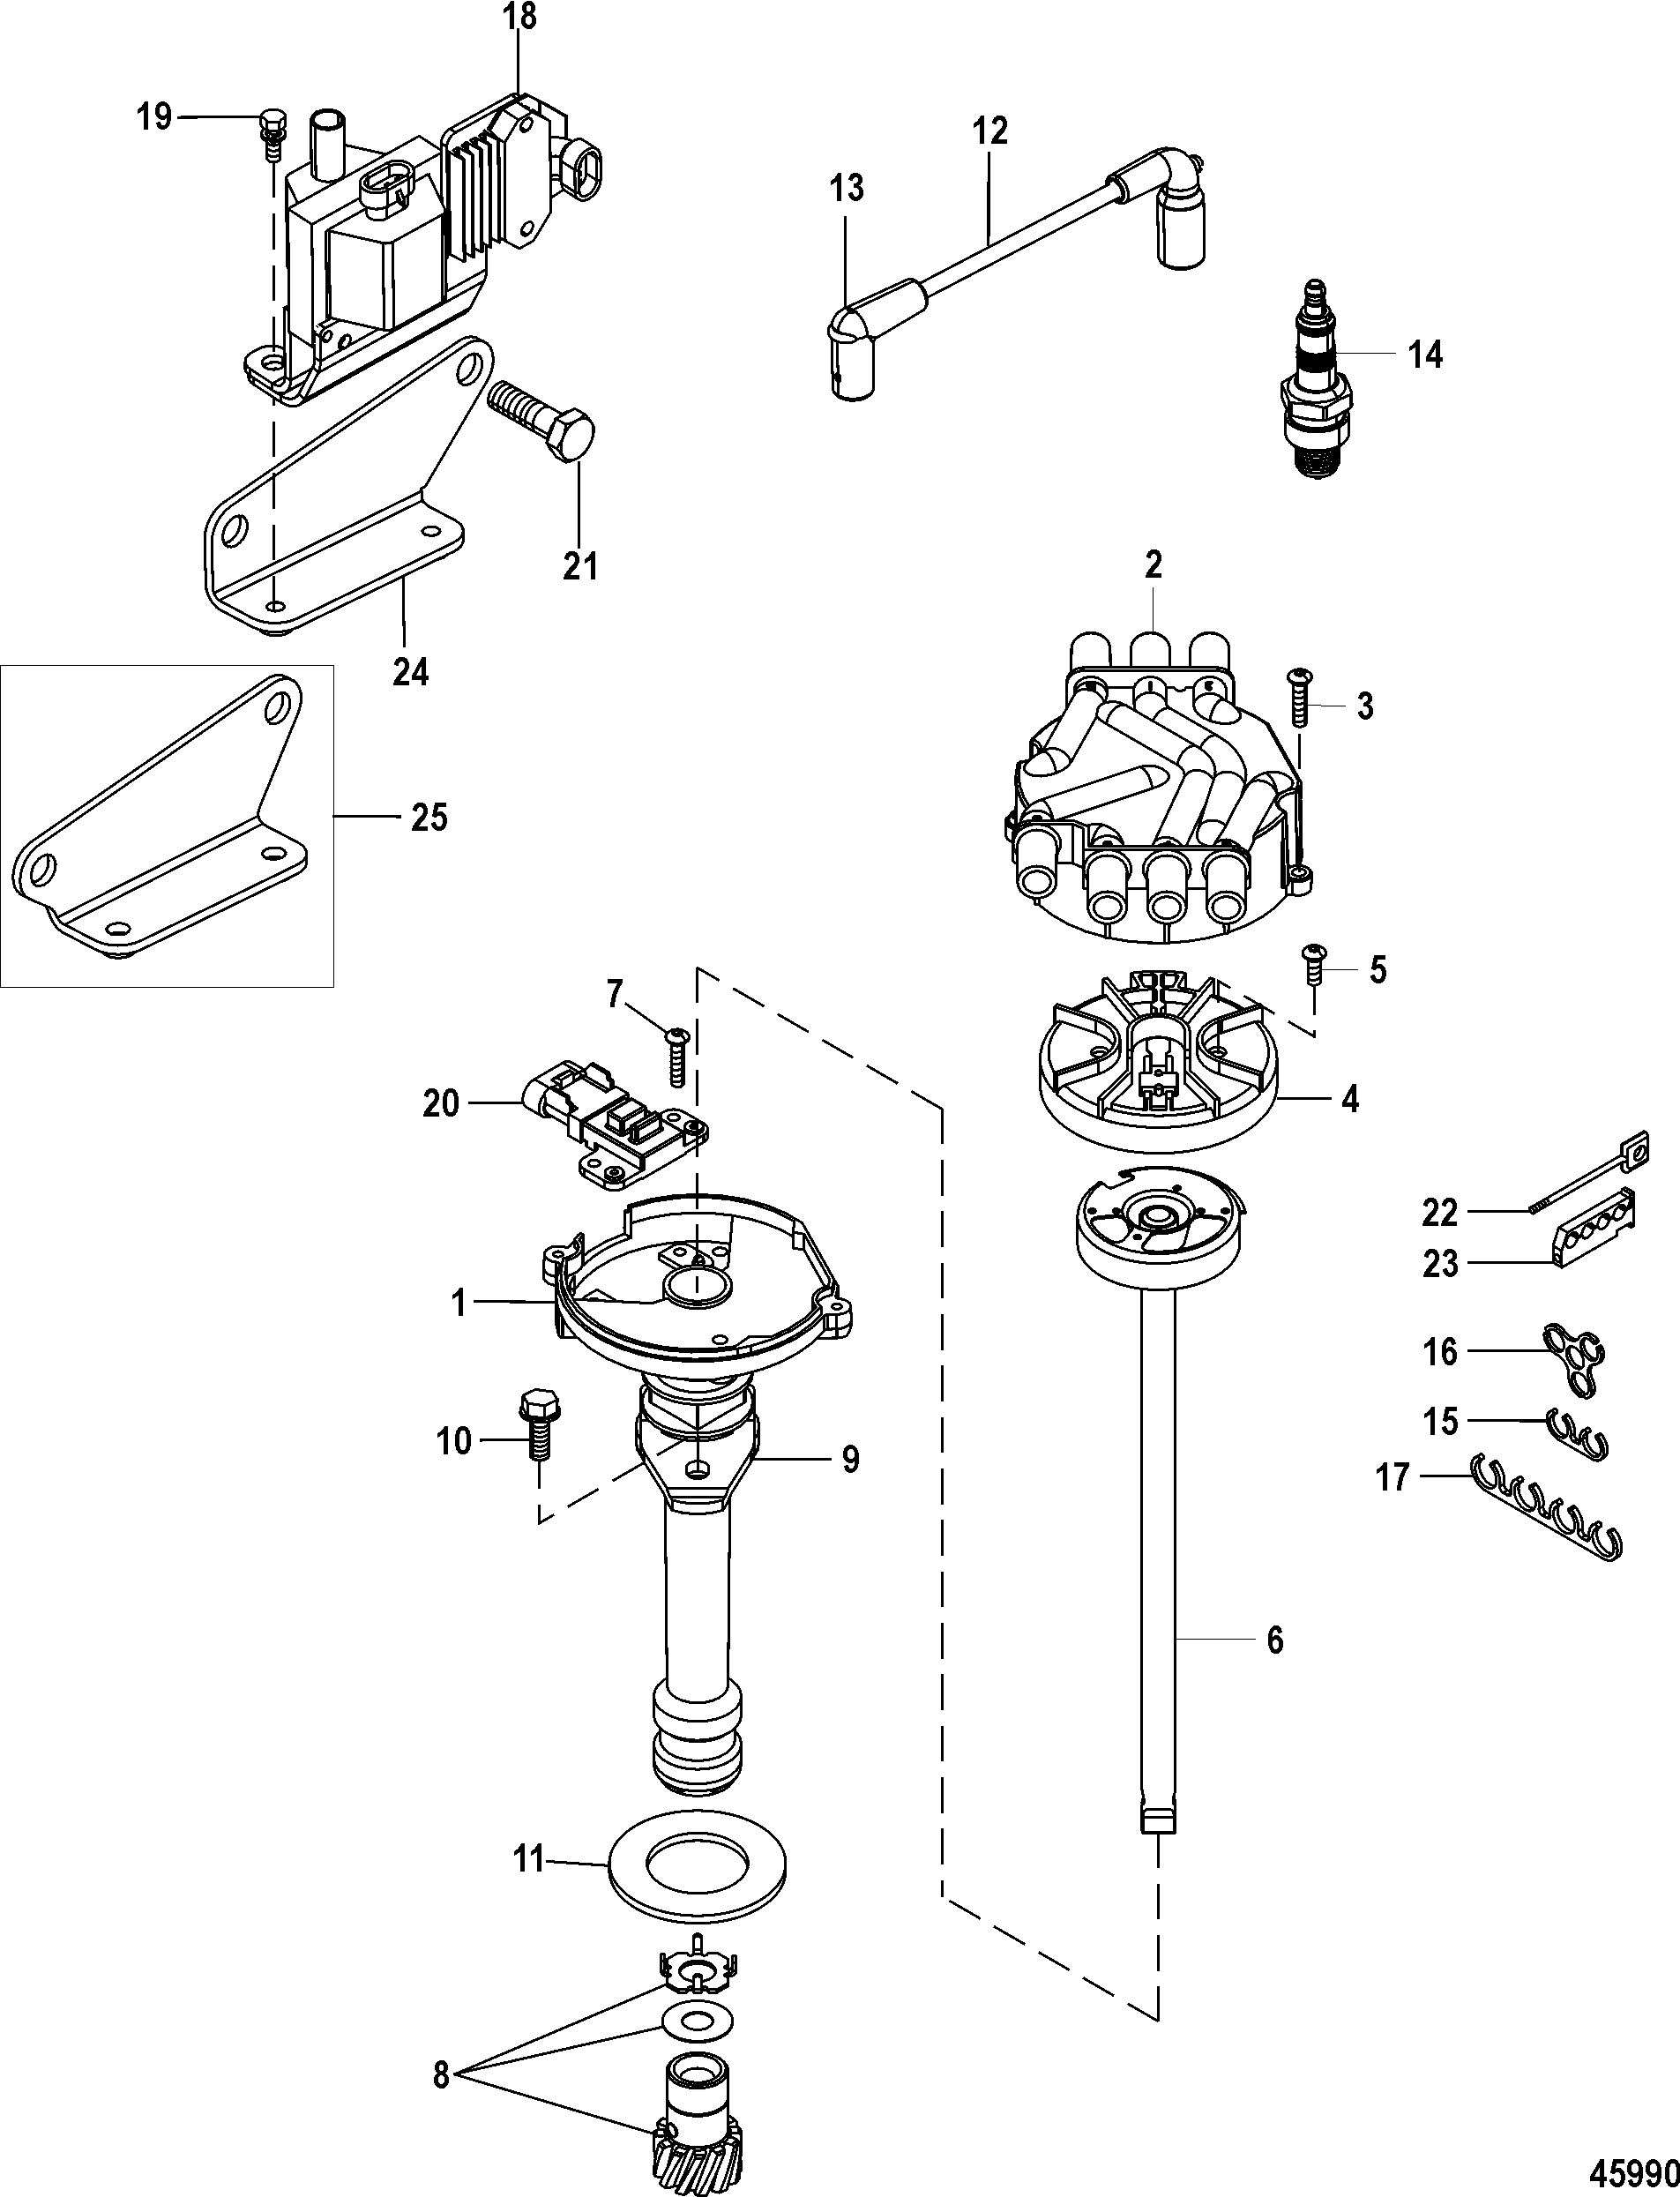 Distributor And Ignition Components For Mercruiser 4 3l